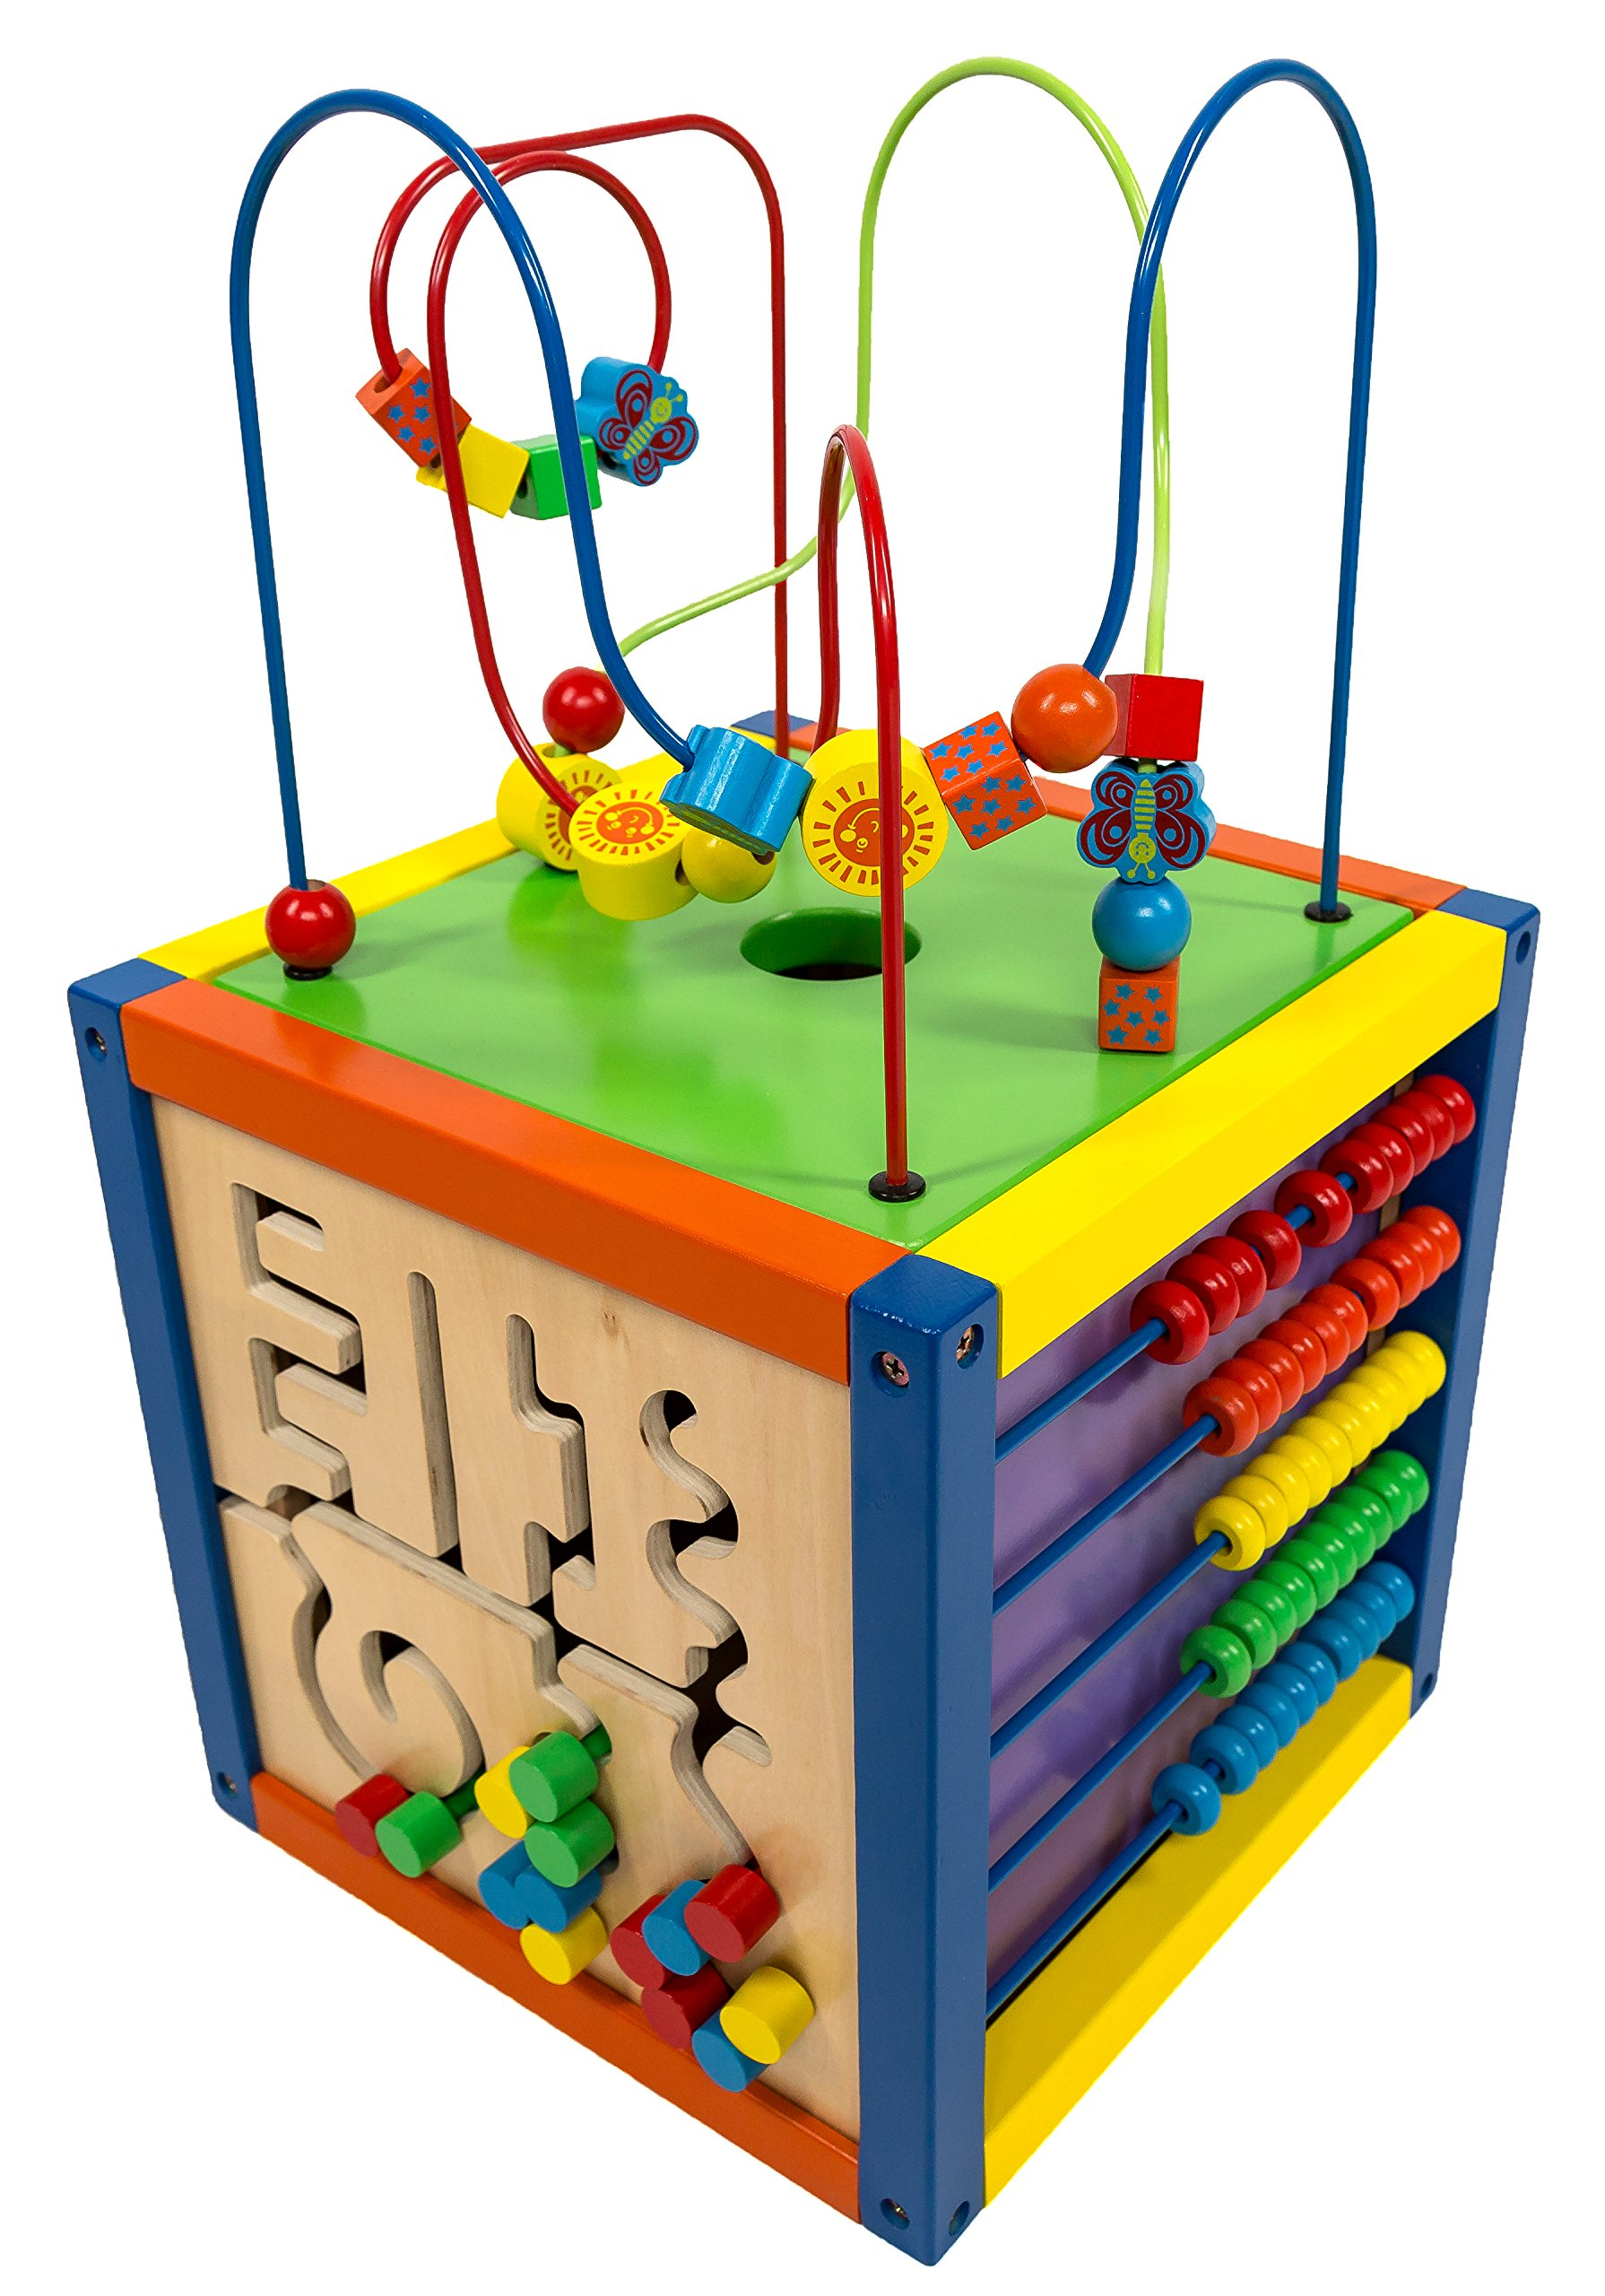 MMP Living 6-in-1 Play Cube Activity Center - Wood, 12'' - 6 Sided Including Race Track with car, Xylophone with Mallet, Clock, Abacus, Block Track and 3 Different Bead Play Options